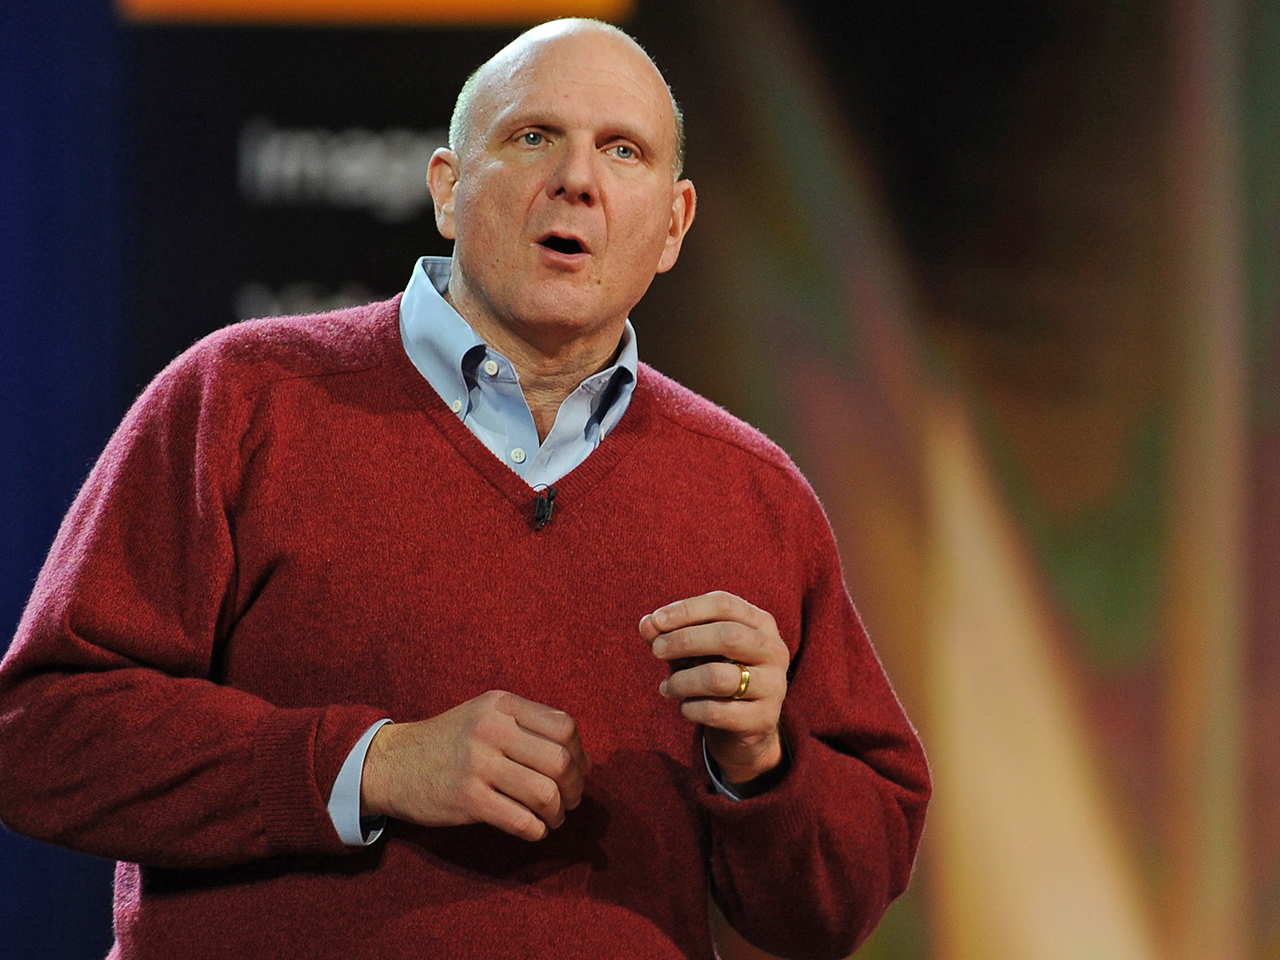 Microsoft CEO Steve Ballmer at 2010 International Consumer Electronics Show, January 6, 2010 in Las Vegas, Nevada.